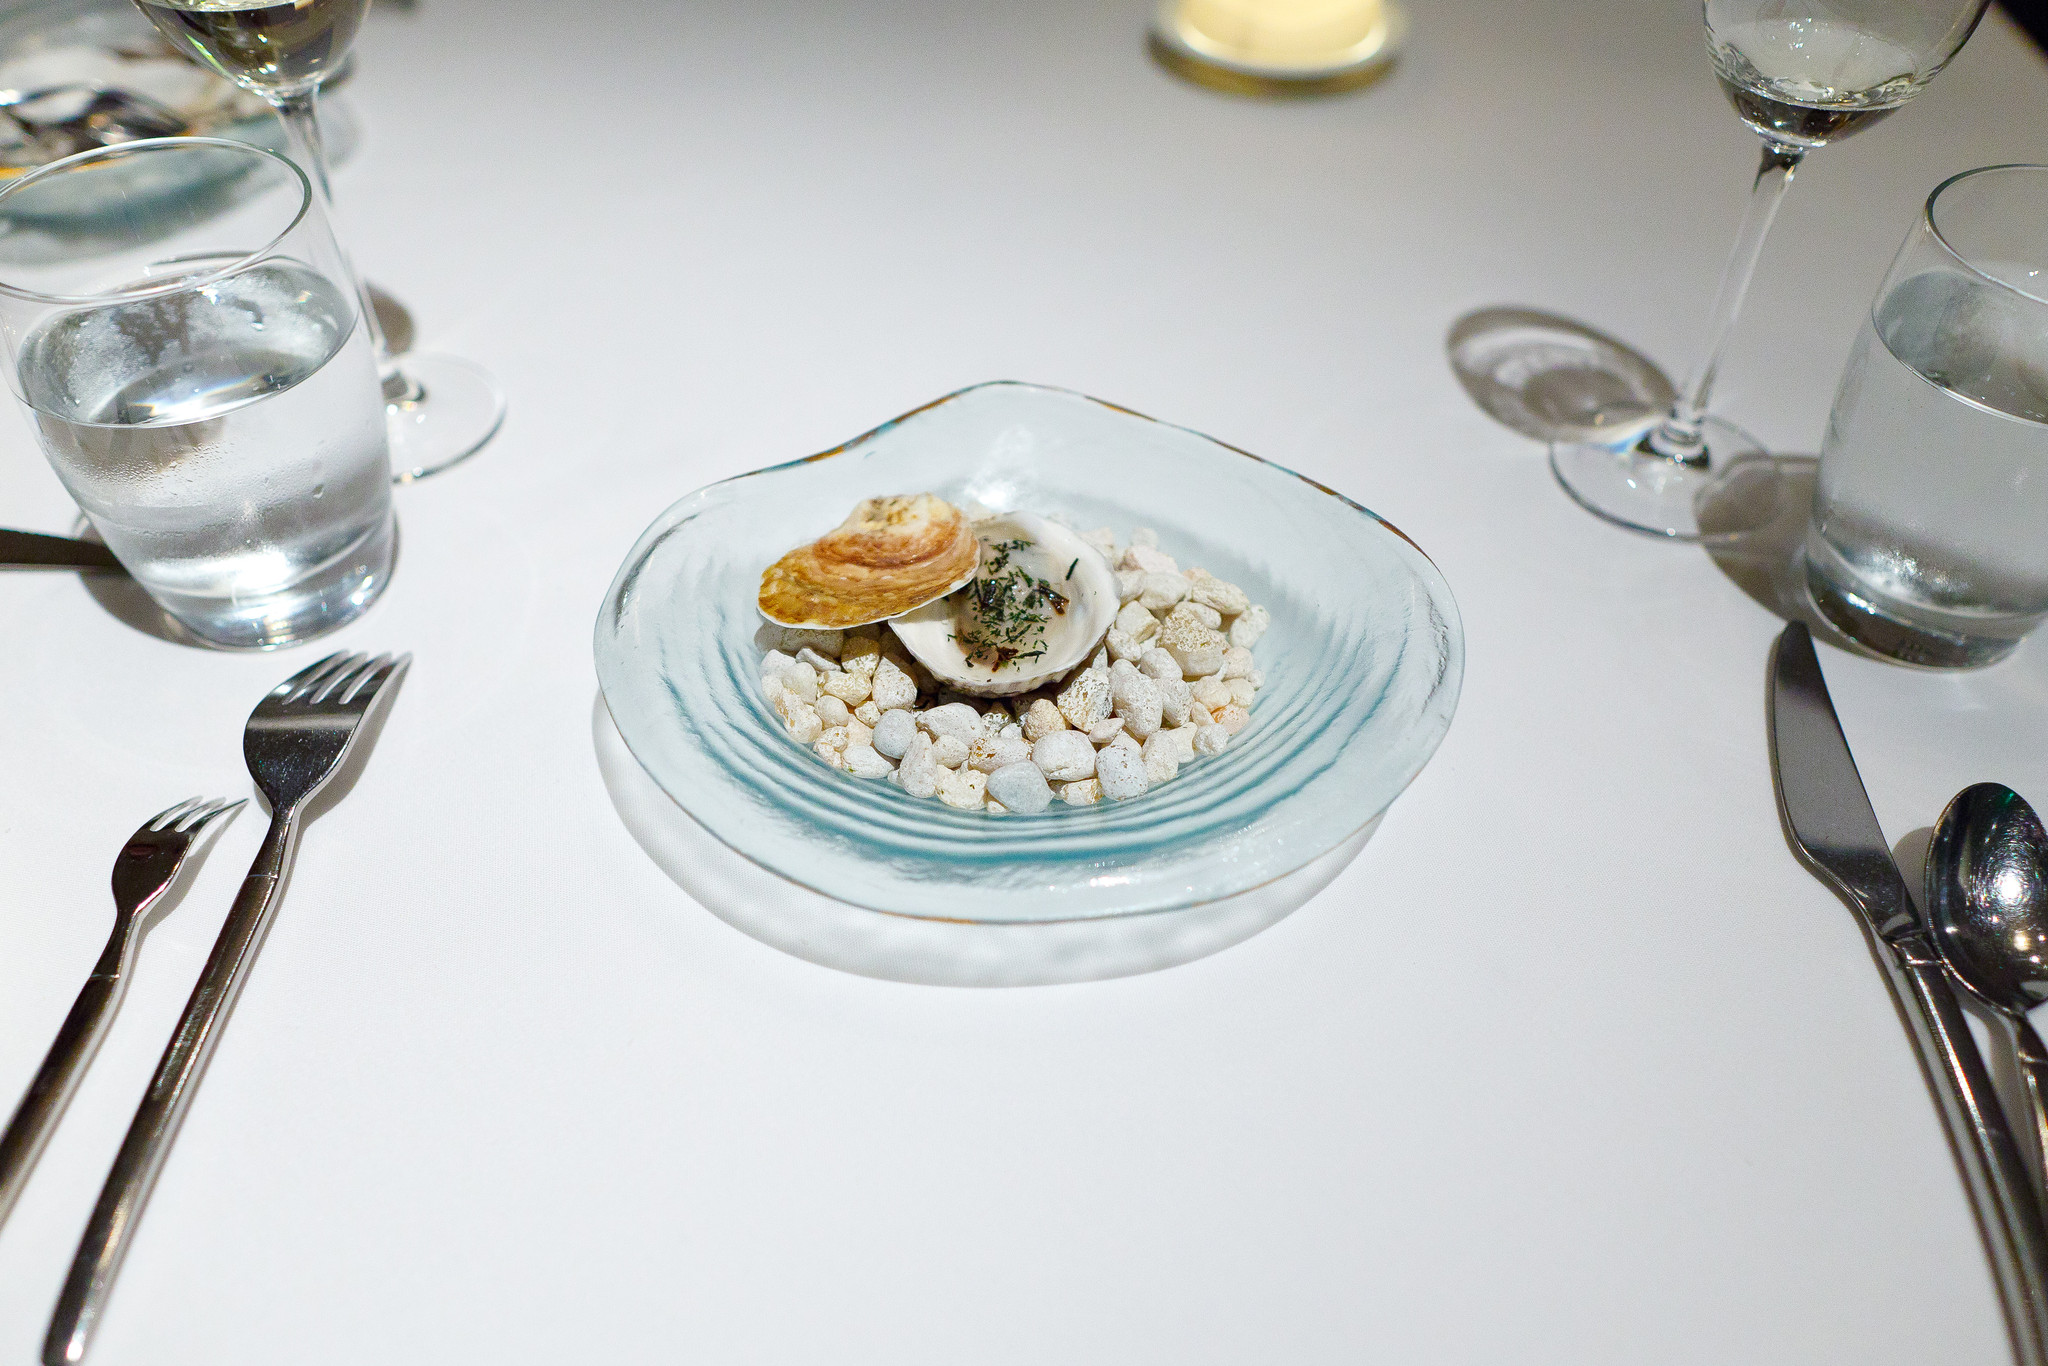 """3rd Course - """"An elemental oyster"""" - Lightly poached in its own shell, ocean water gelée, nori flakes"""